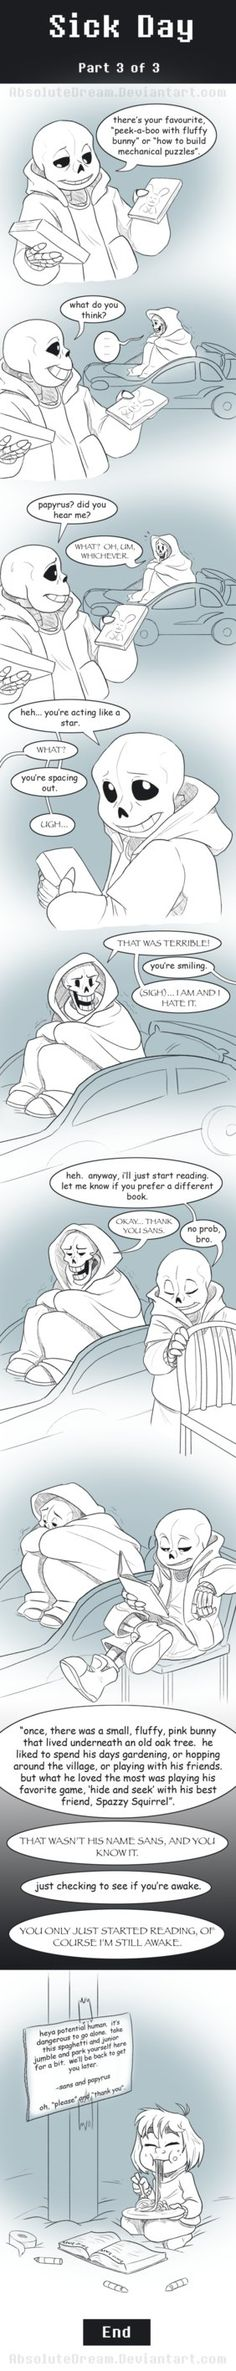 Part 1: Part 2: Part 3: You're here! --------------- Can a skeleton get sick? Uhh... I dunno. I made a comic anyway.  Anyway, this is just another ra...